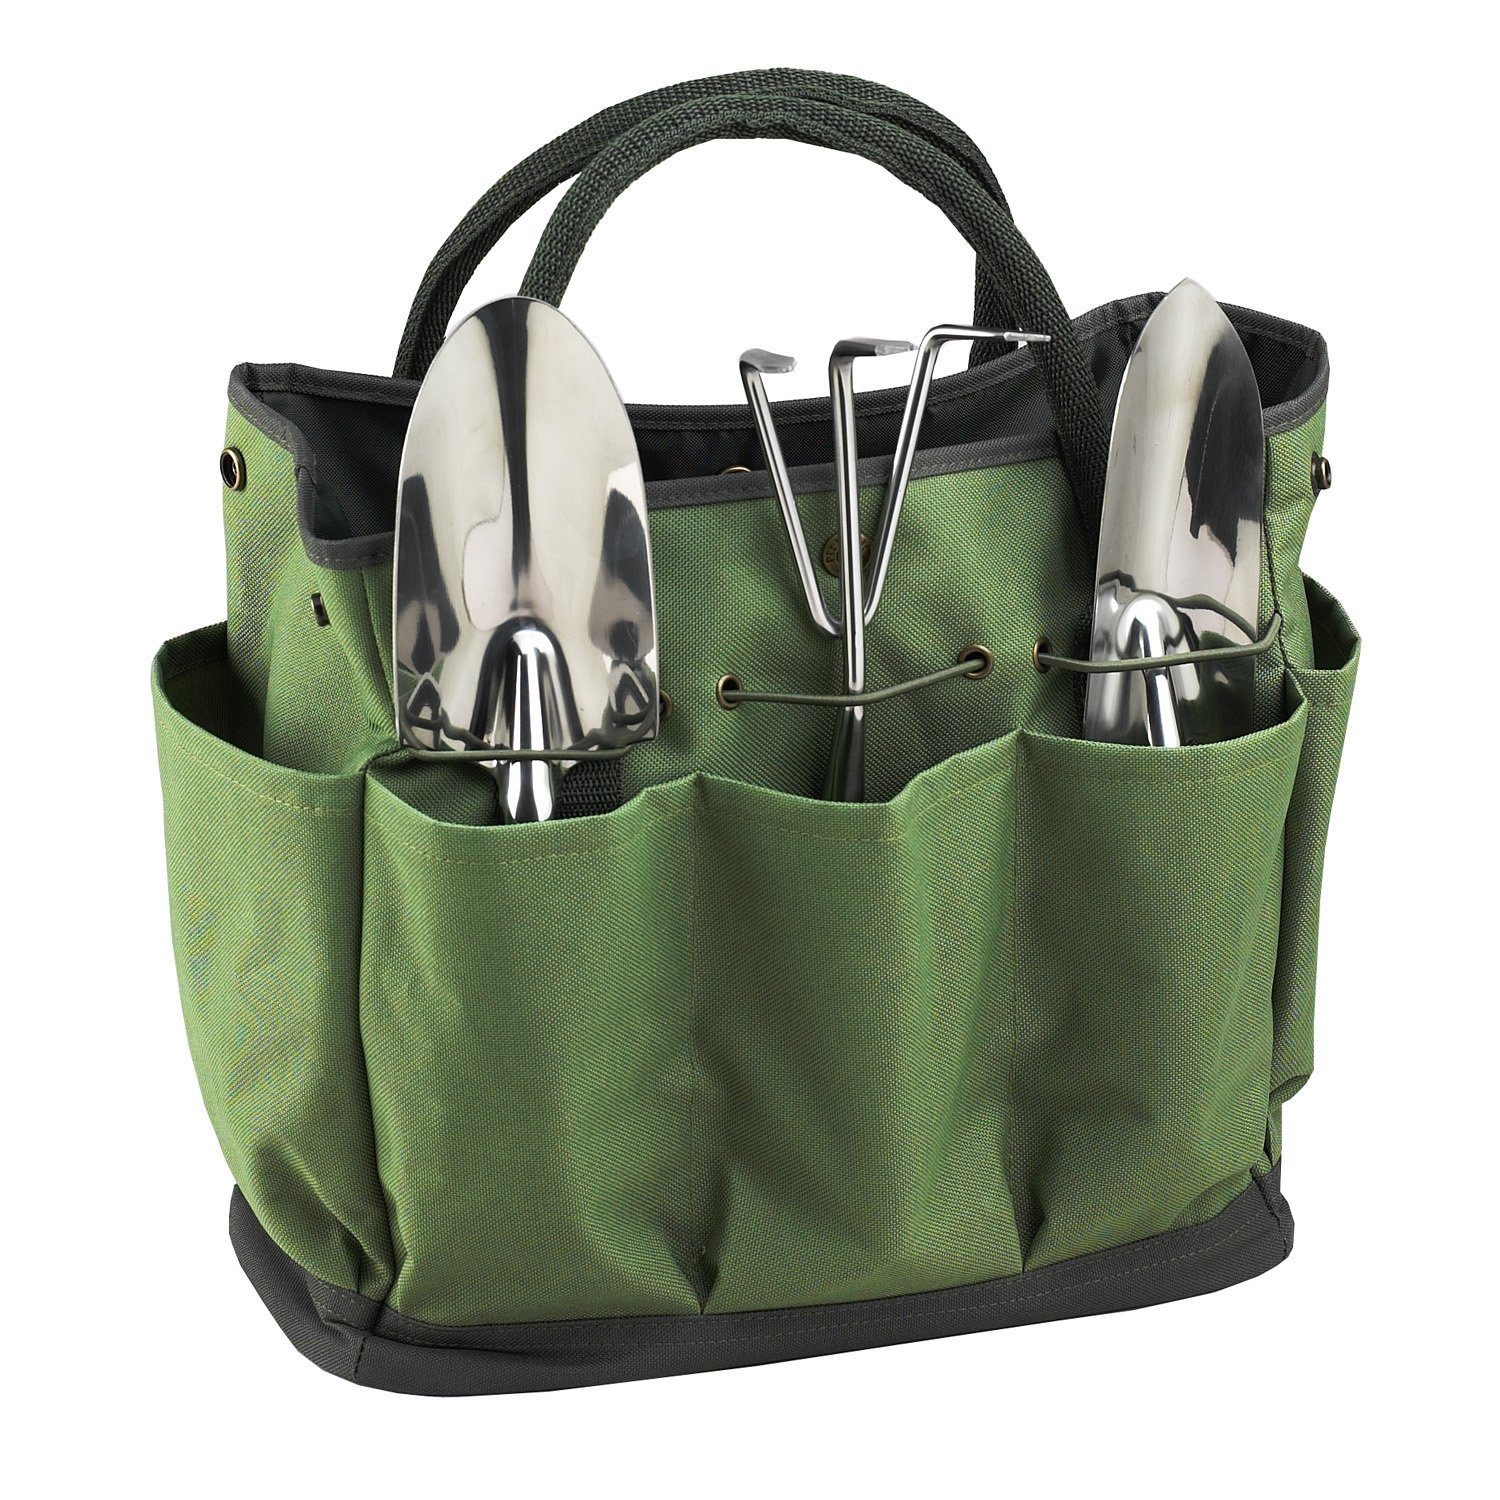 Picnic at Ascot Eco Garden Tote with Tools, Eco Green